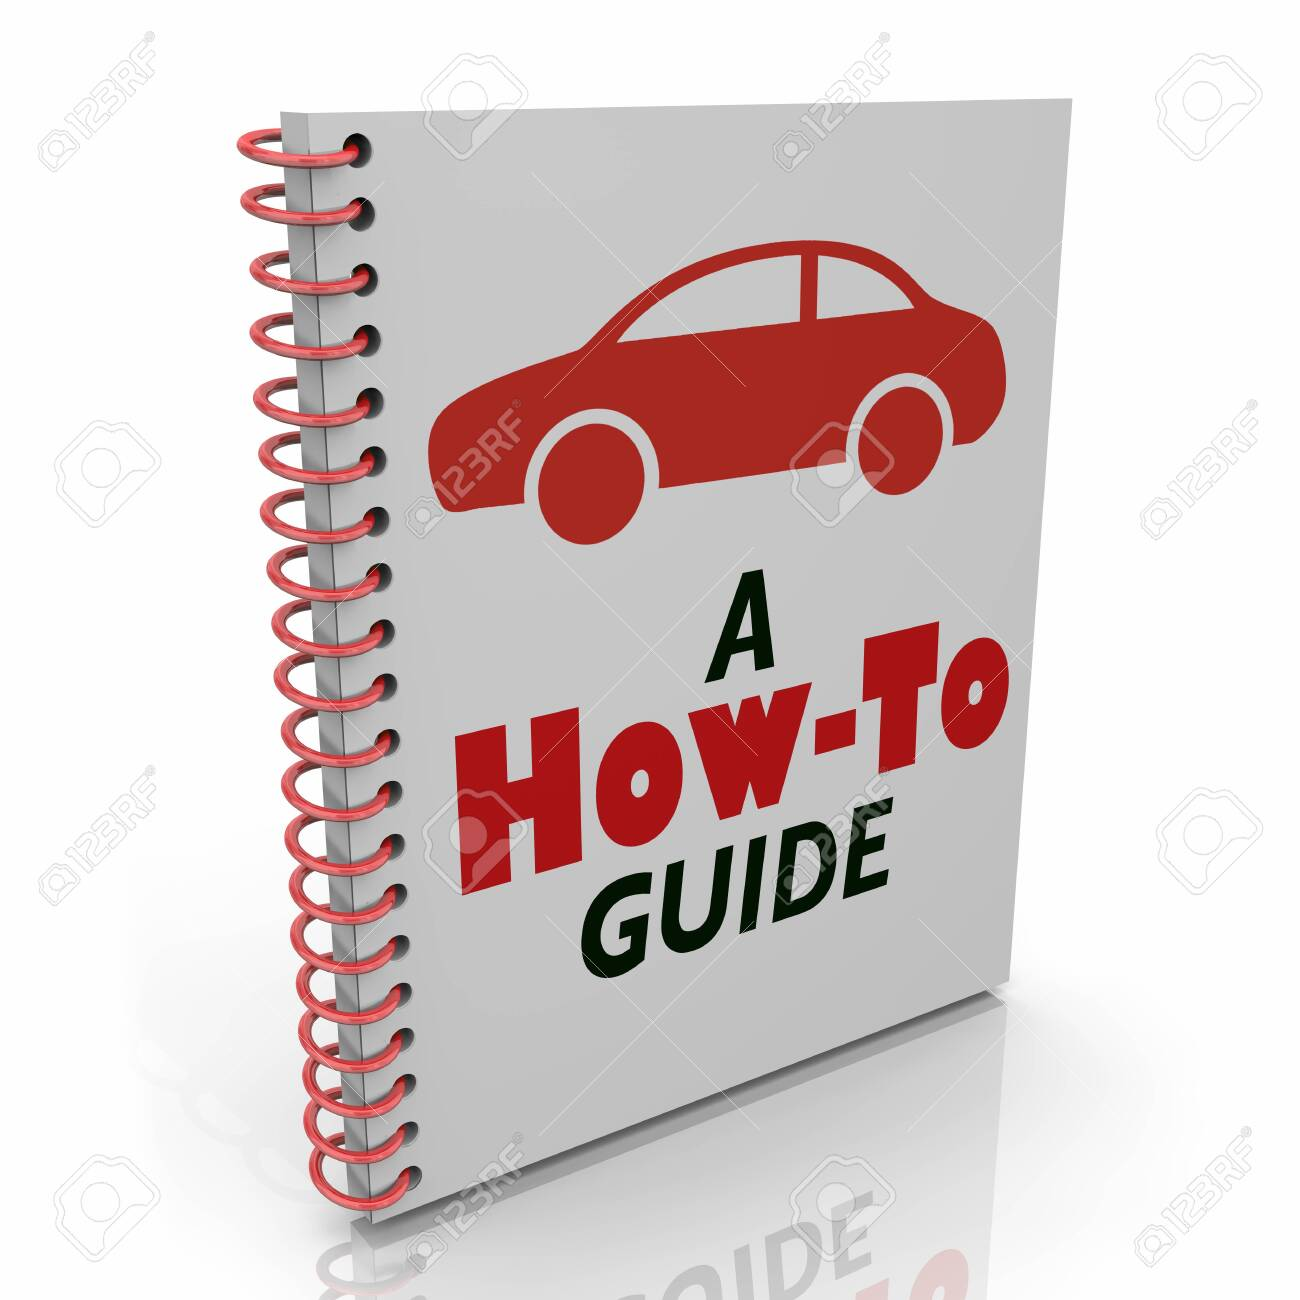 Auto User Manual How to Guide Car Vehicle Instructions Repair 3d Illustration - 121407906